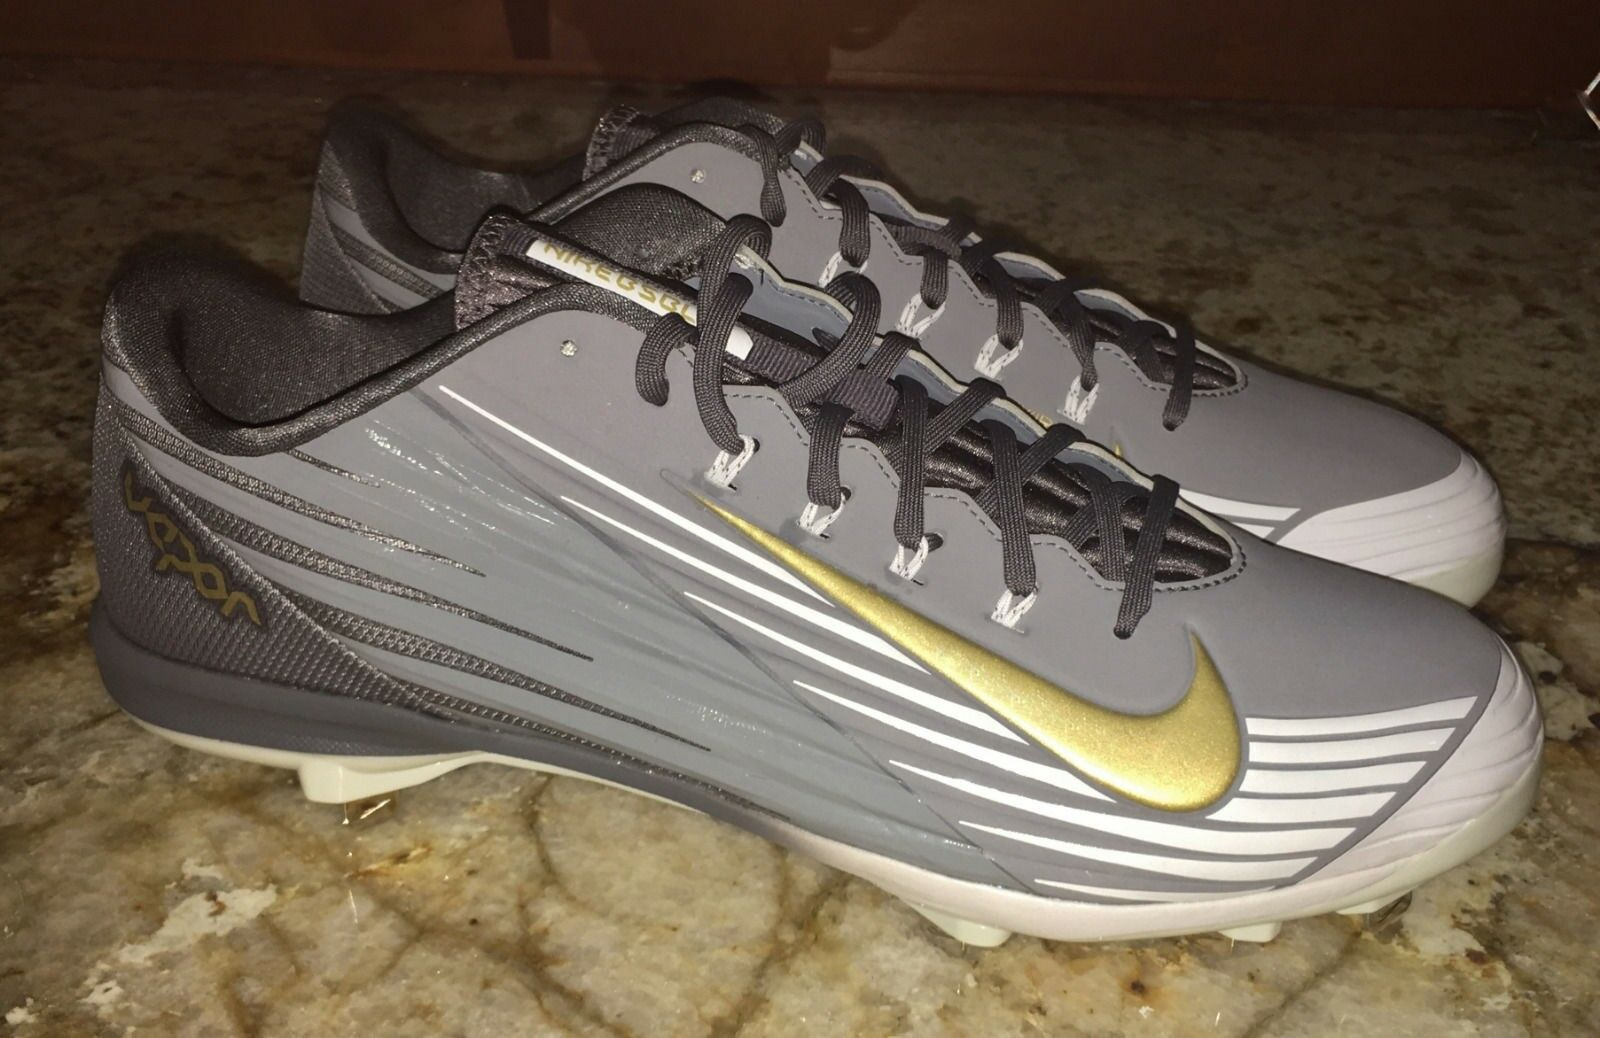 NIKE Lunar Vapor Pro Low Grey gold White Baseball Spikes Cleats NEW Men 8 8.5 14